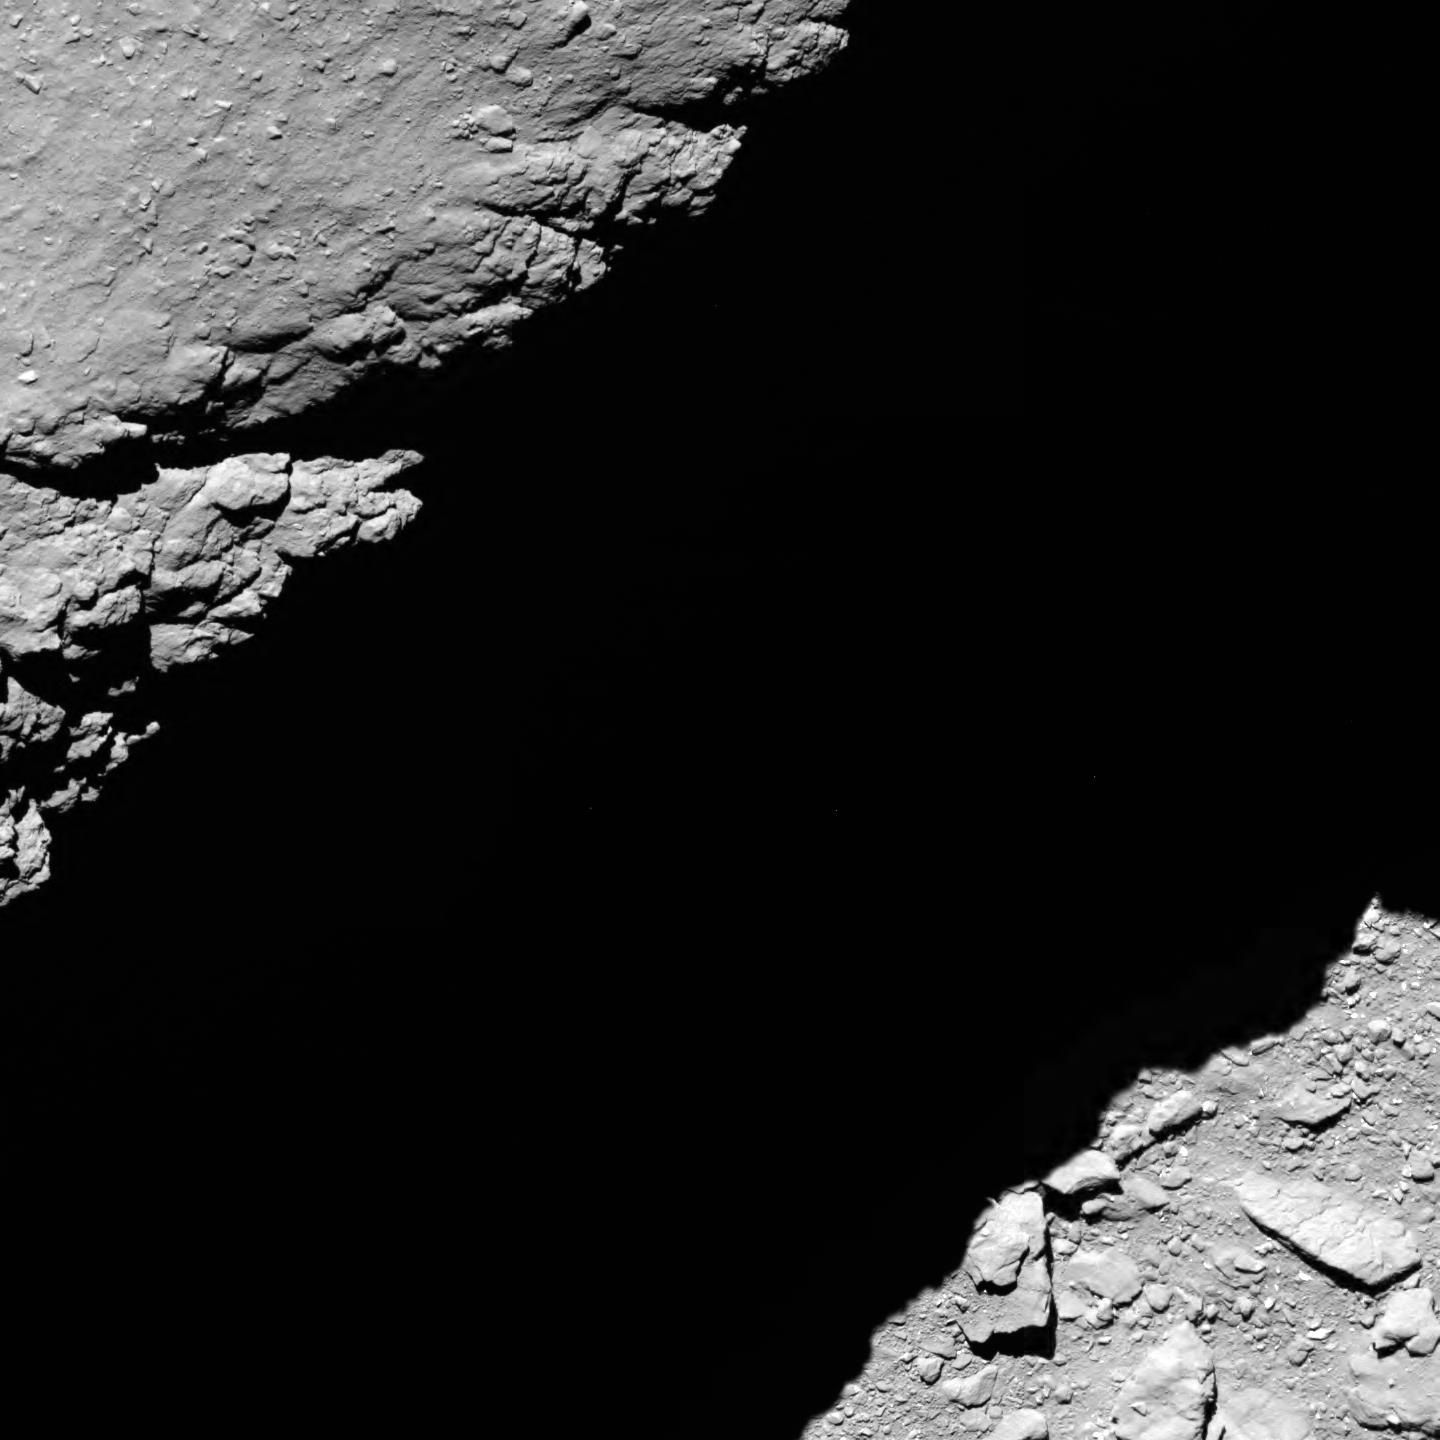 is_rosetta_atterrisage_comet_from_1.2_km_narrow-angle_camera.jpg